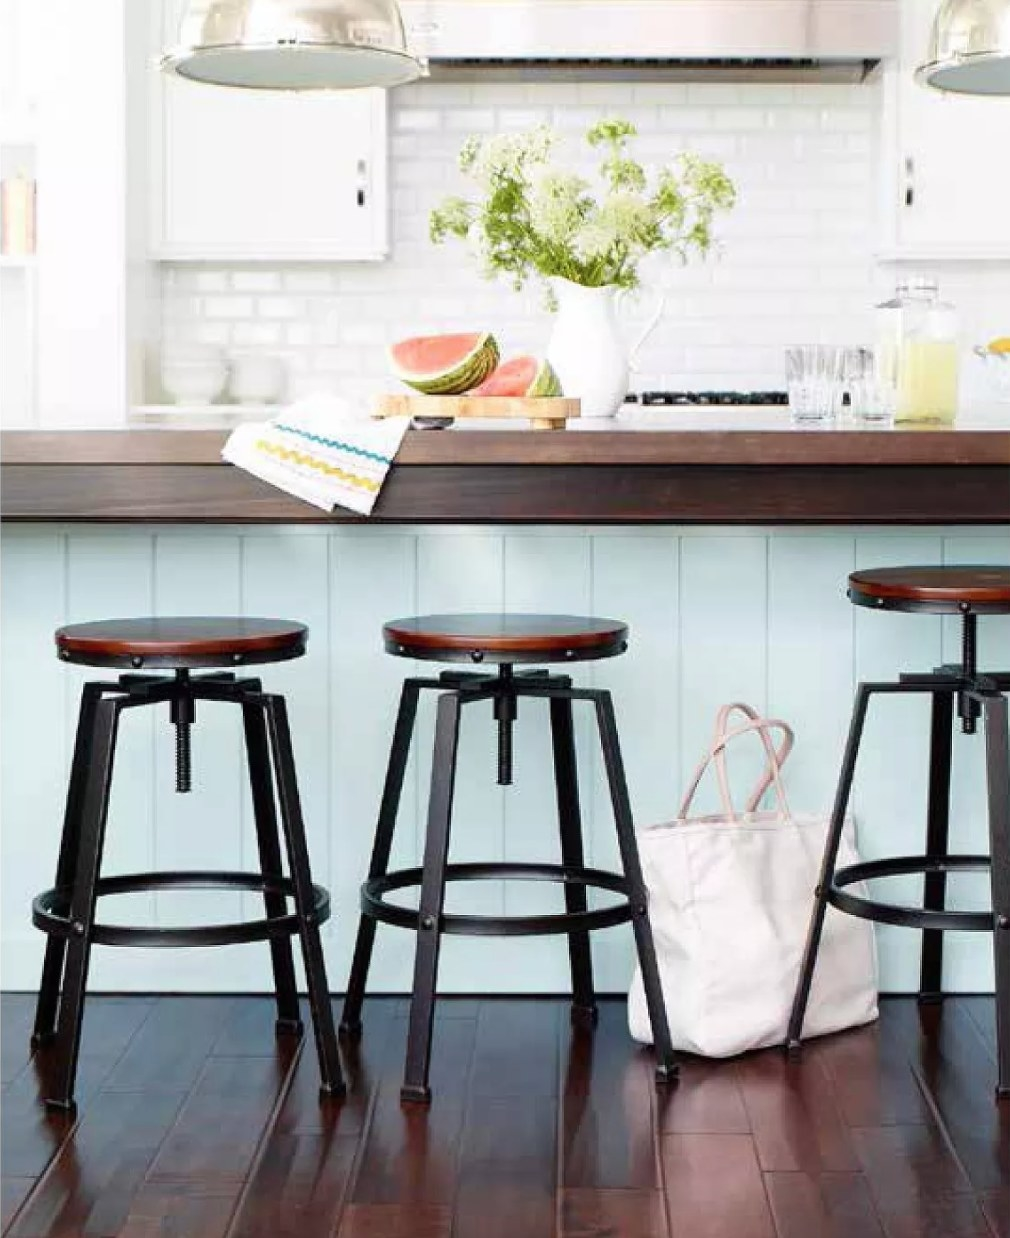 Bar stools with metal legs and wooden adjustable top